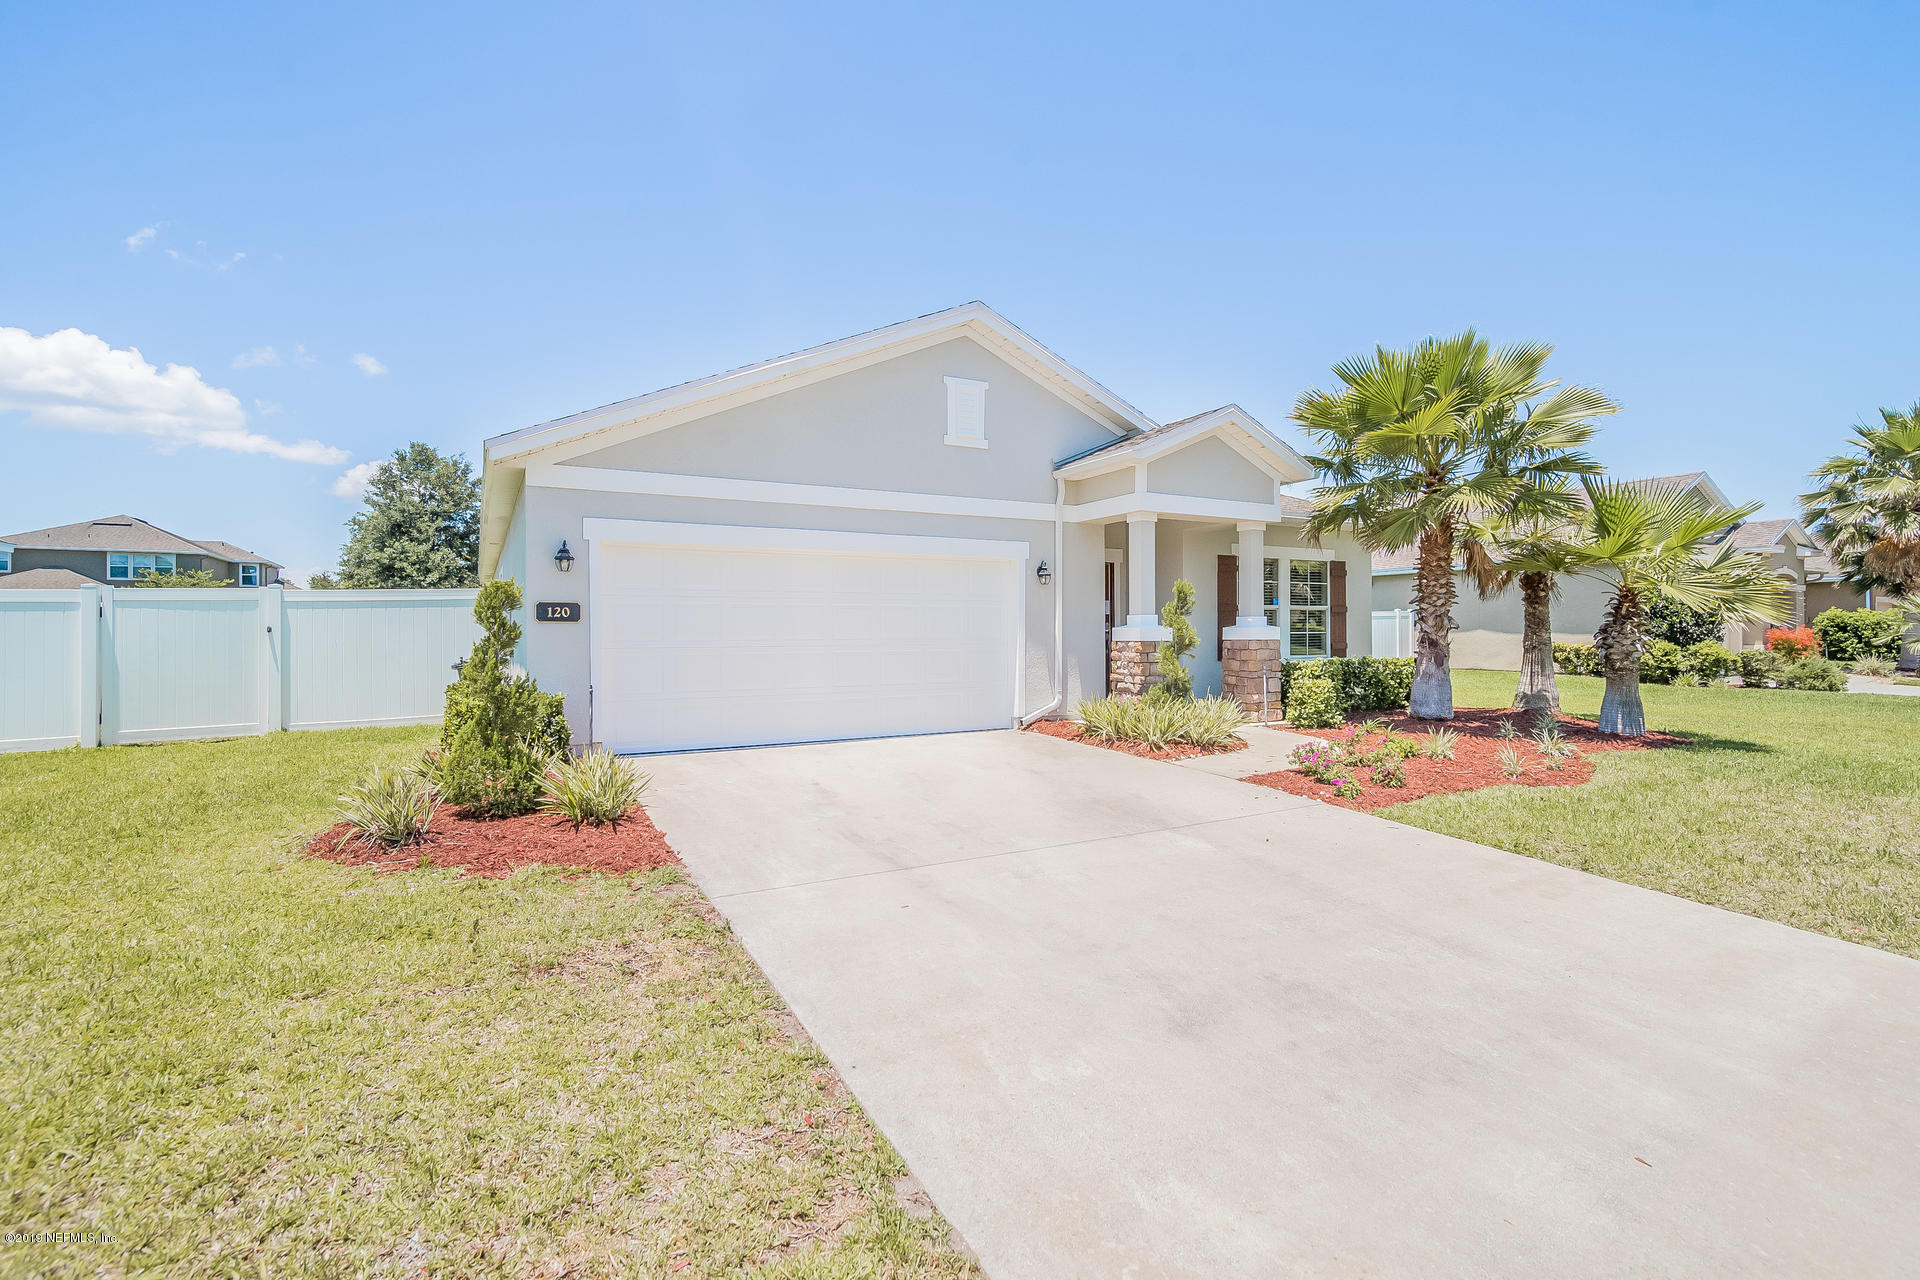 120 COREY CAY AVE ST AUGUSTINE - 1